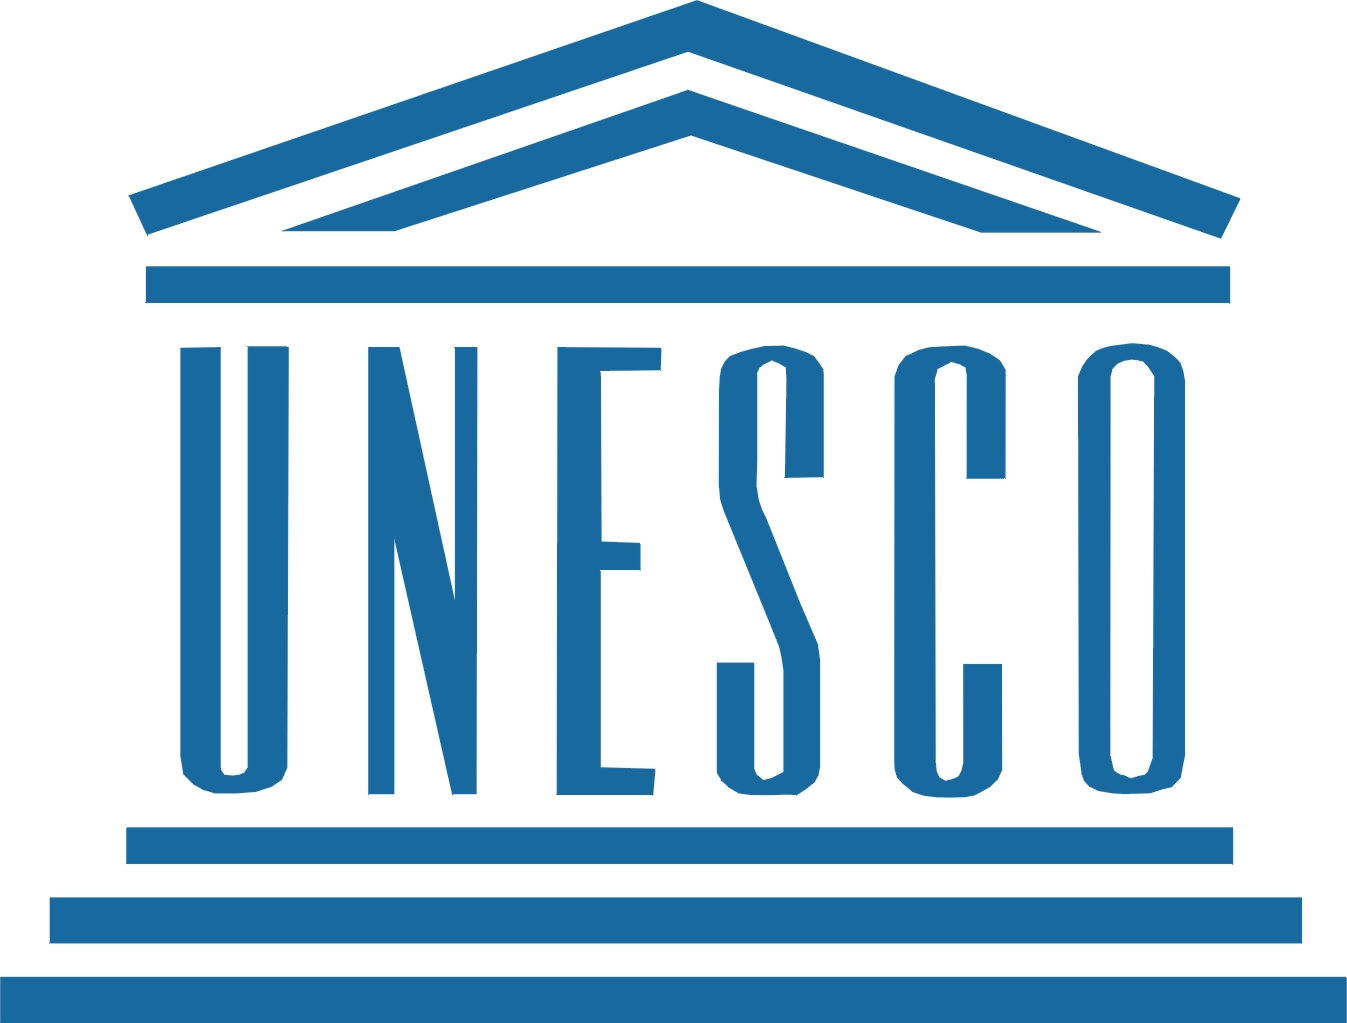 Climate Change: UNESCO To Partner Nigeria On Lake Chad